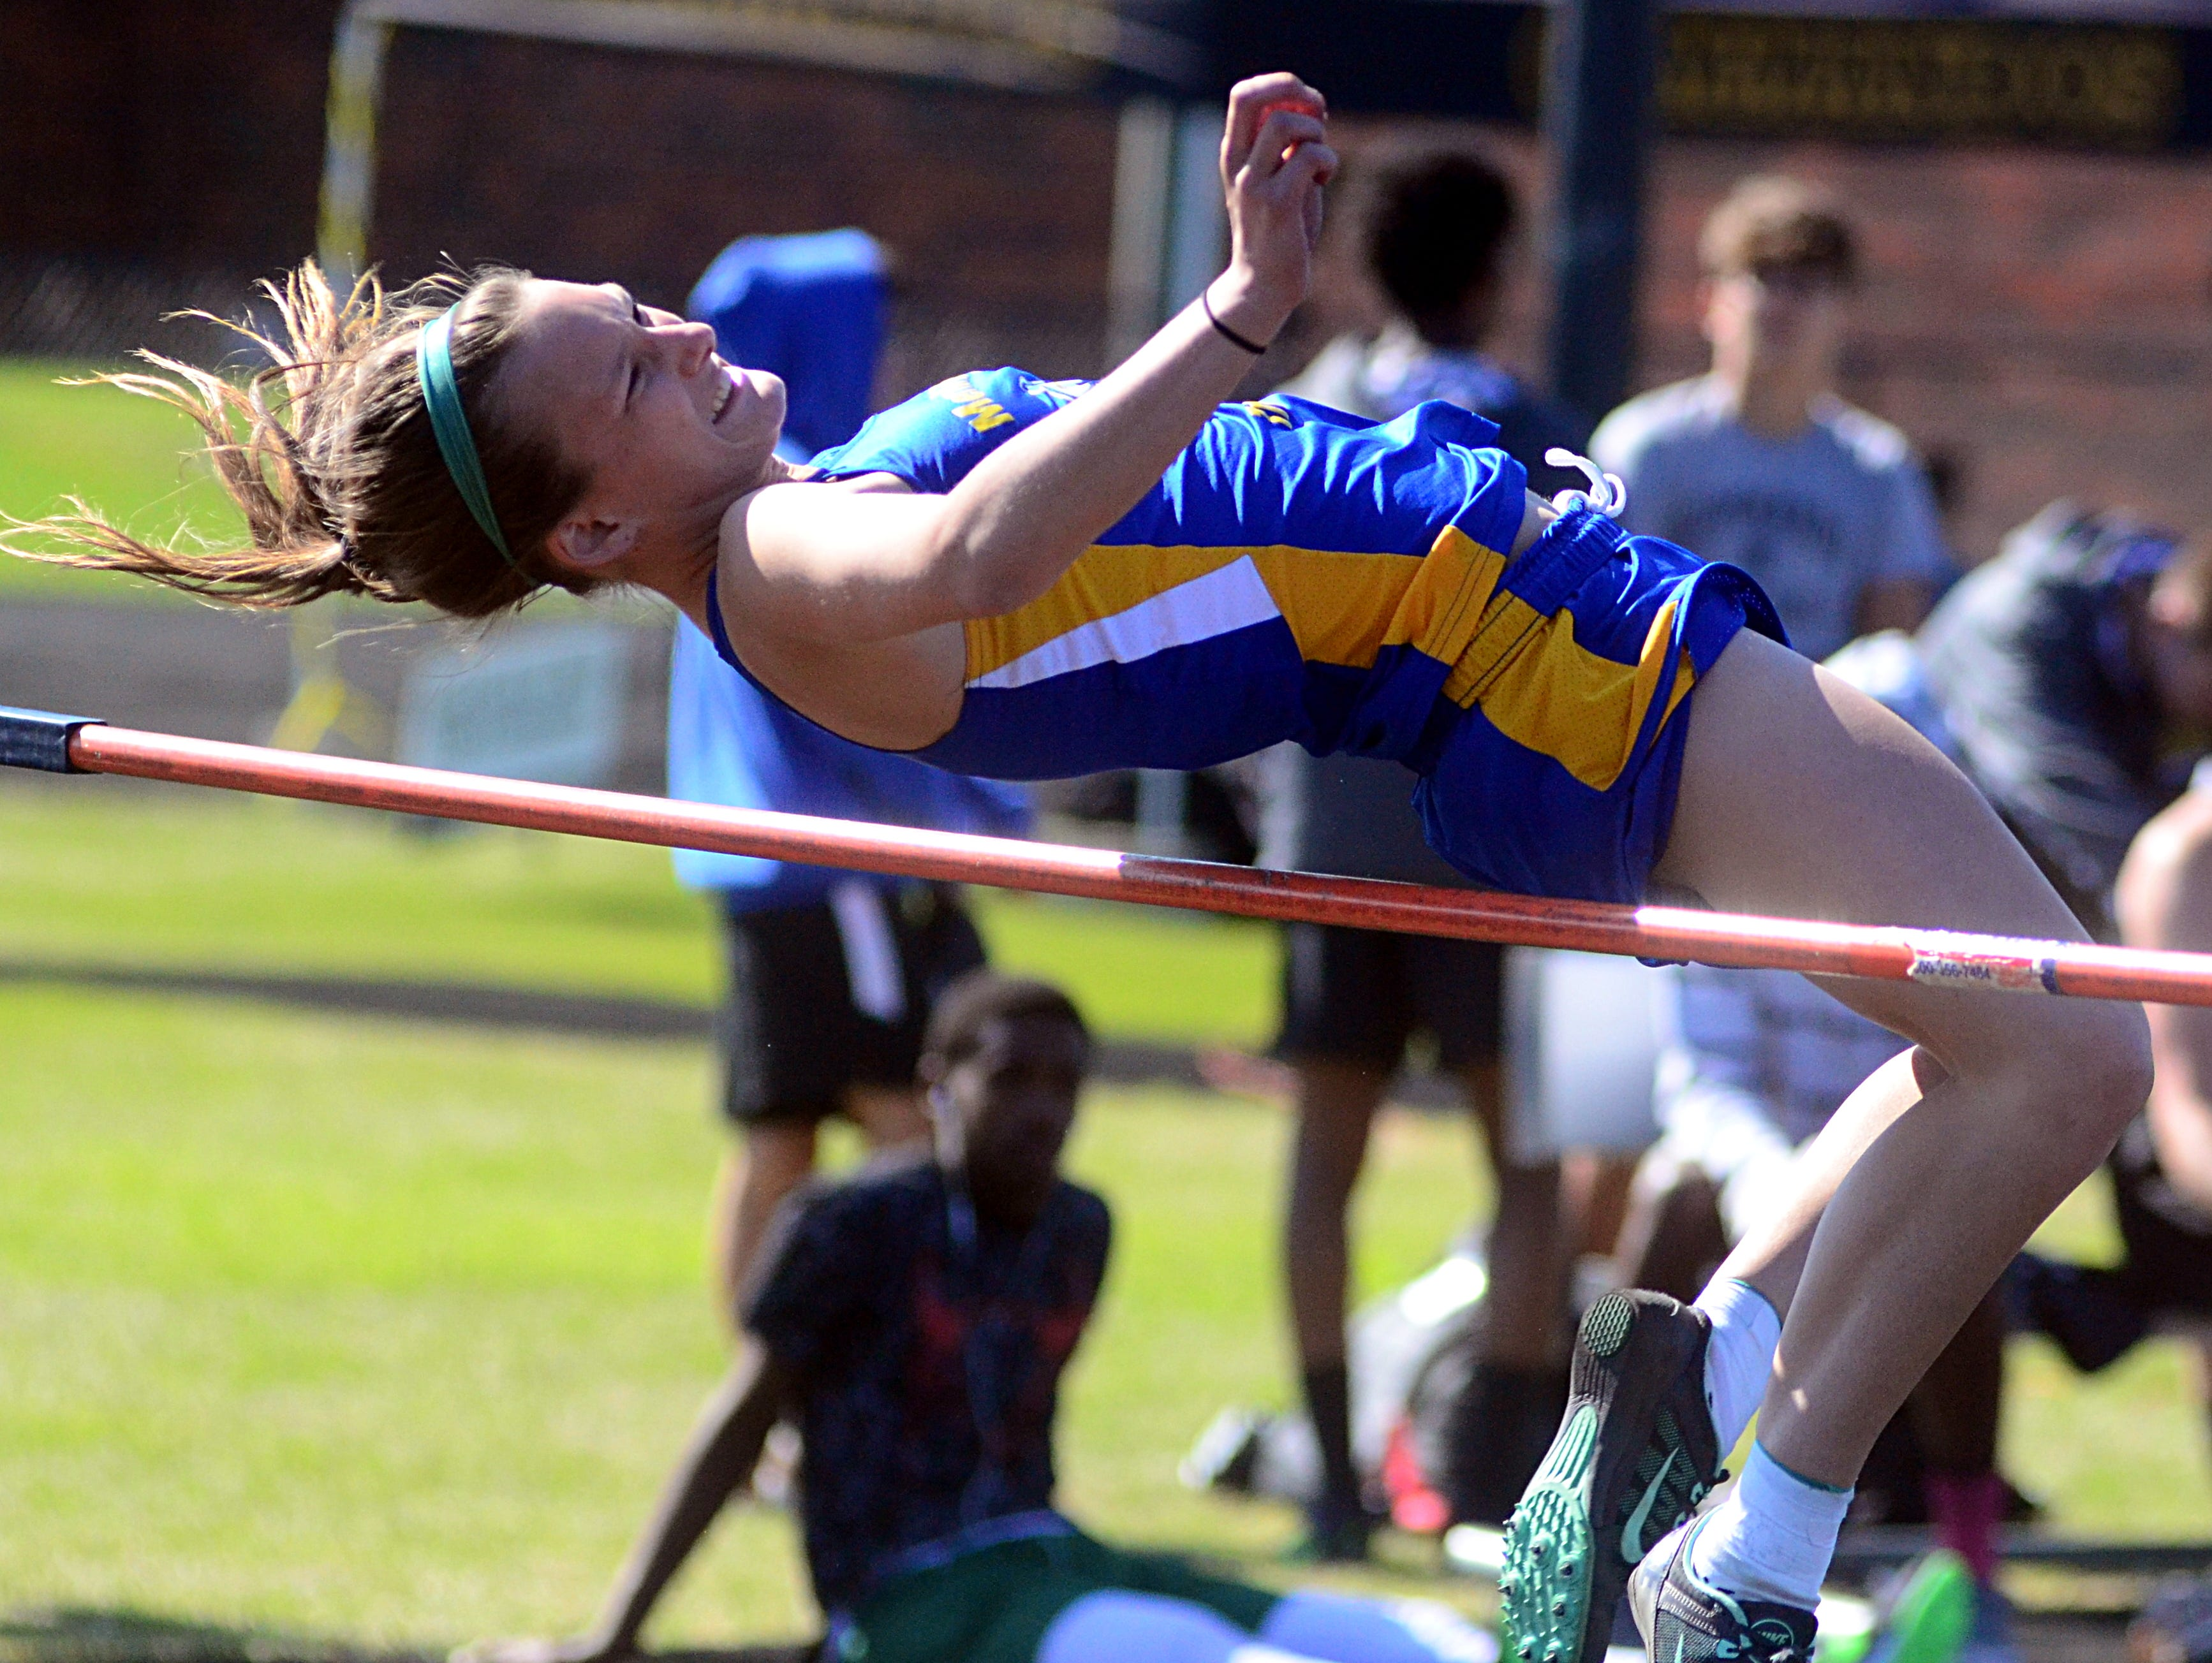 Merrol Hyde Magnet junior Emilie Boone finished third in the girls' high jump with a best effort of 4 feet, 8 inches.